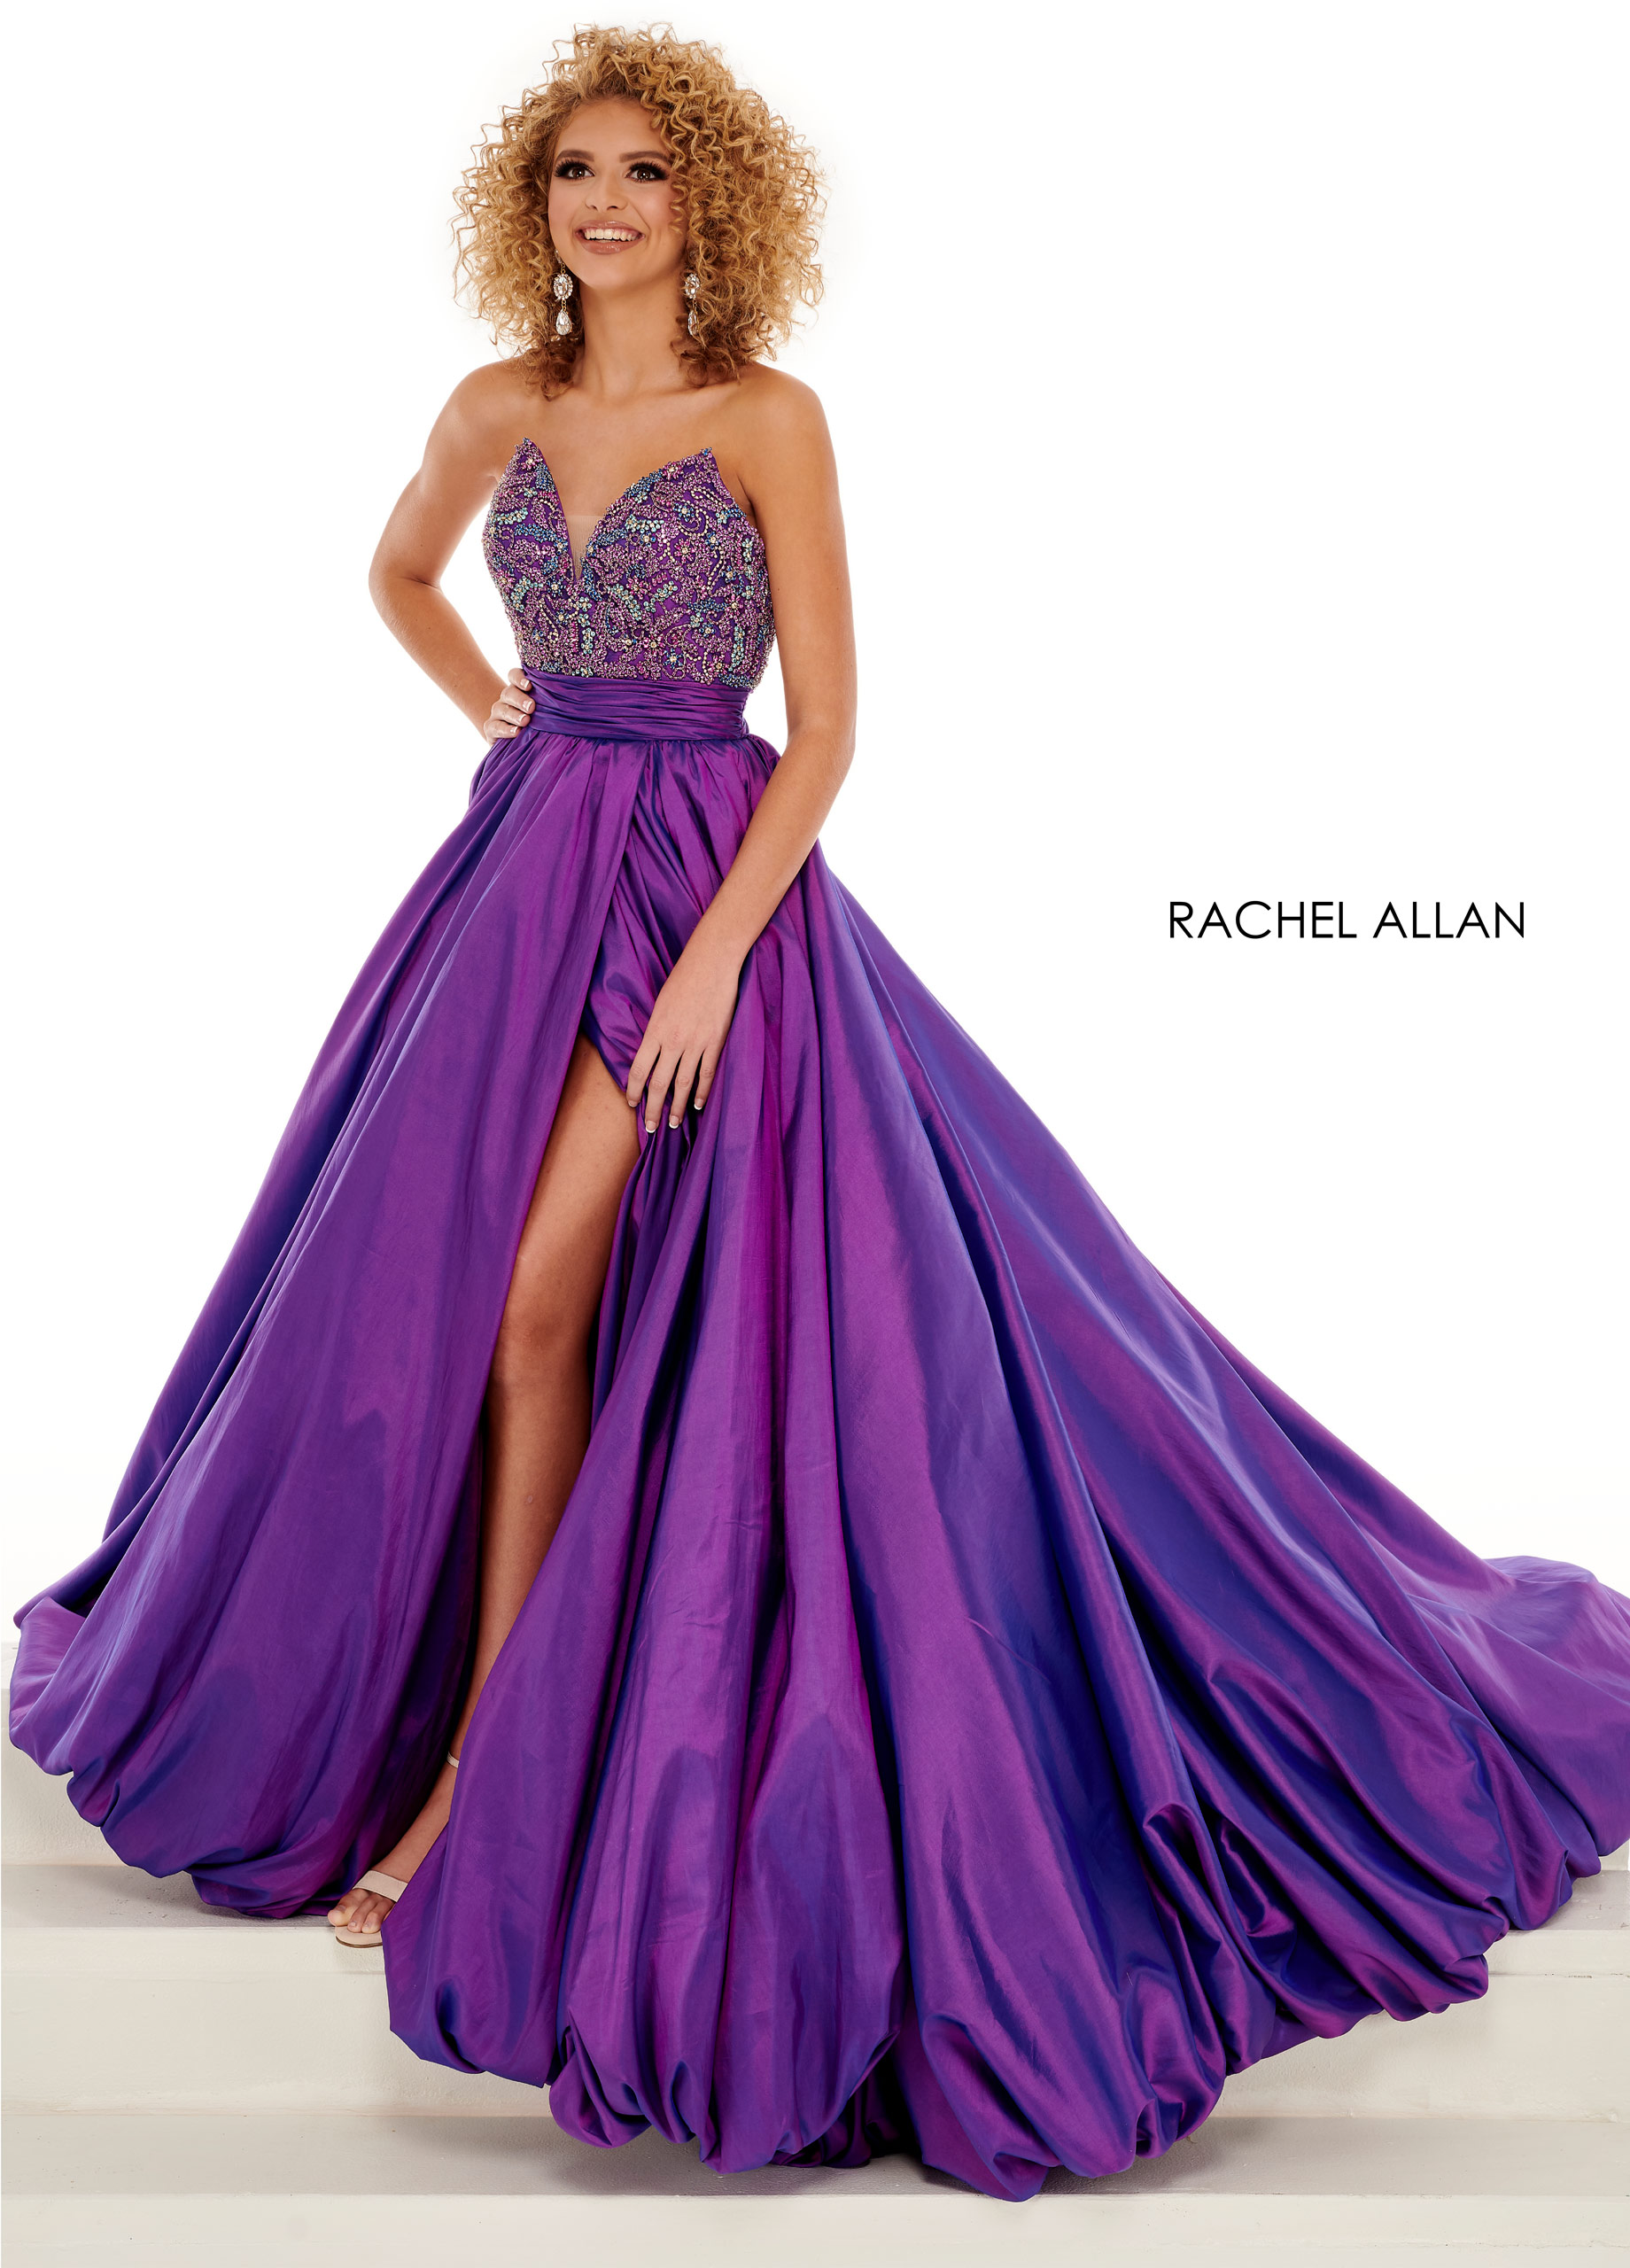 Strapless Ball Gowns Pageant Dresses in Purple Color